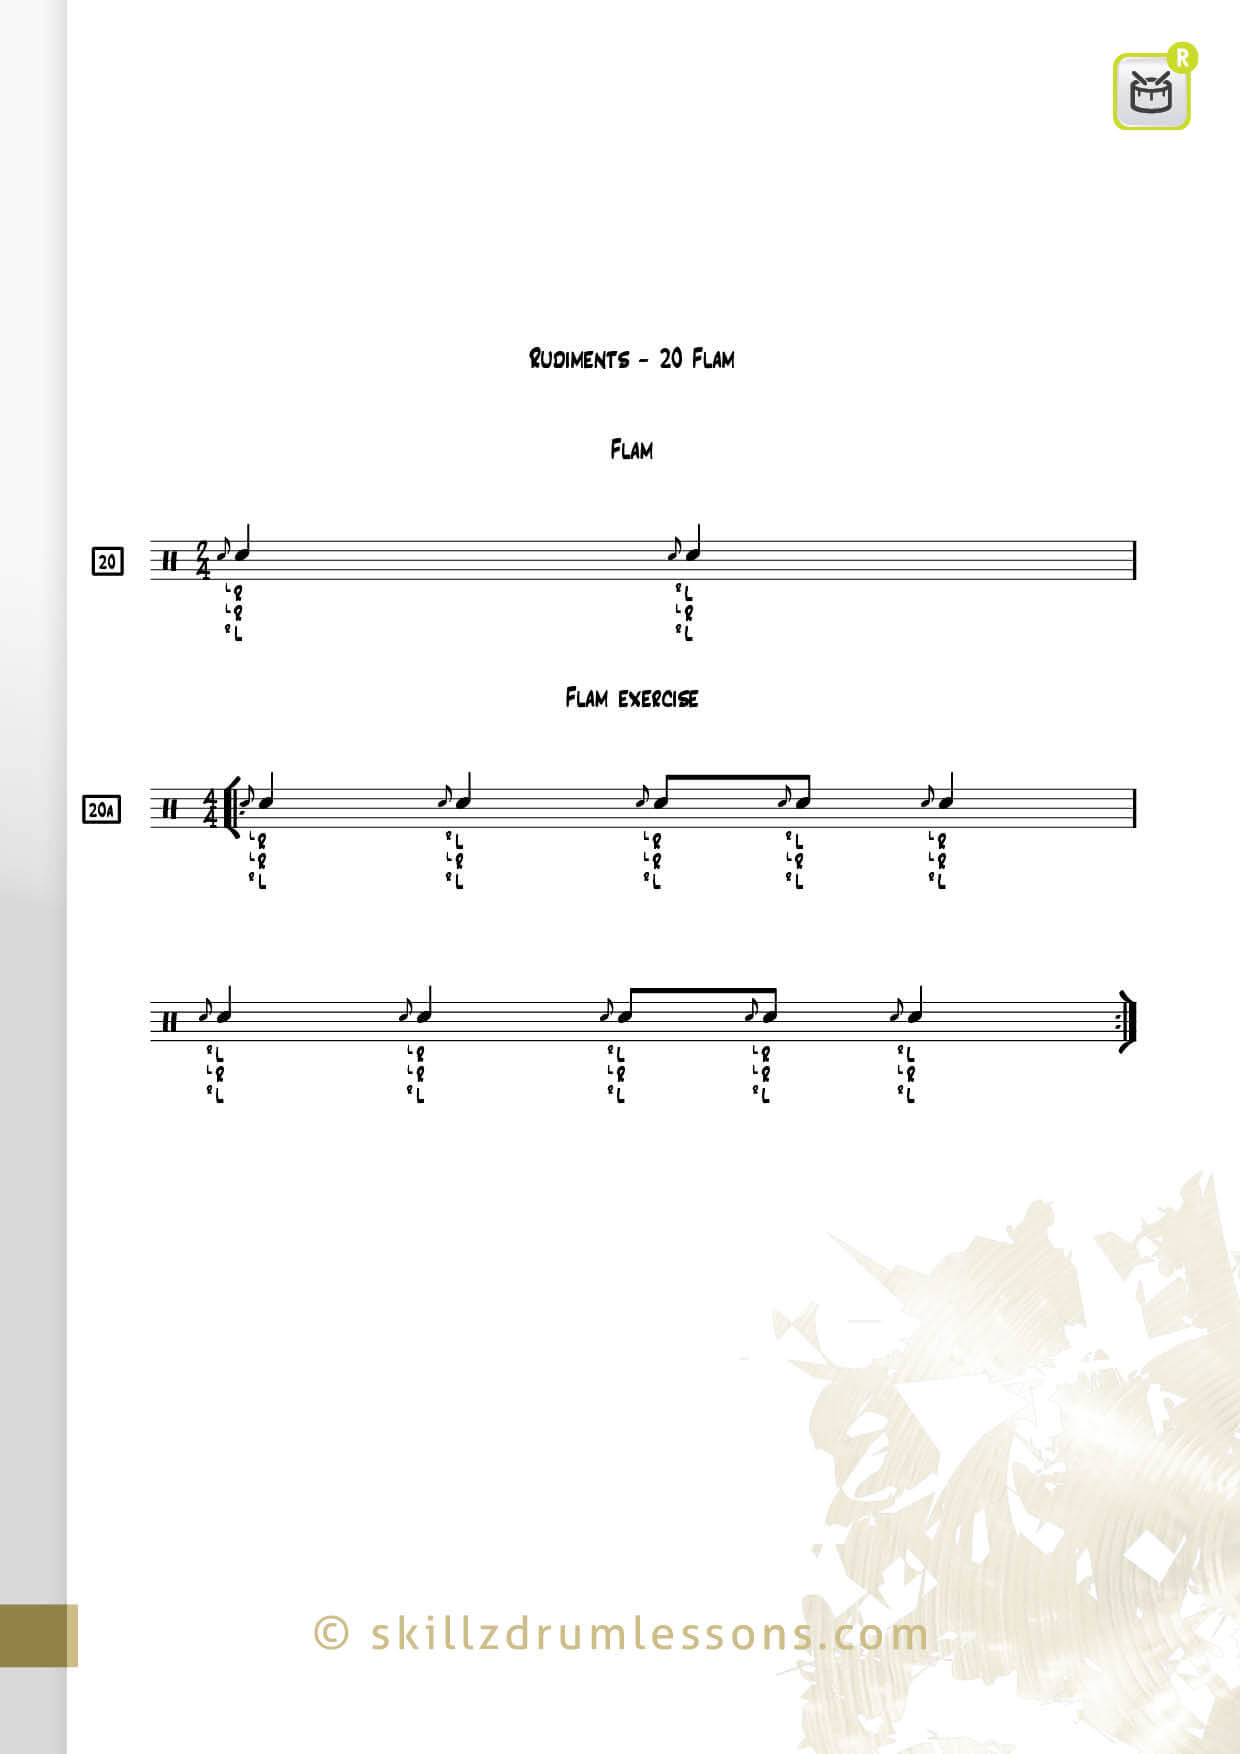 This is an image of the Official 40 Essential P.A.S. Rudiments #20 The Flam by Skillz Drum Lessons